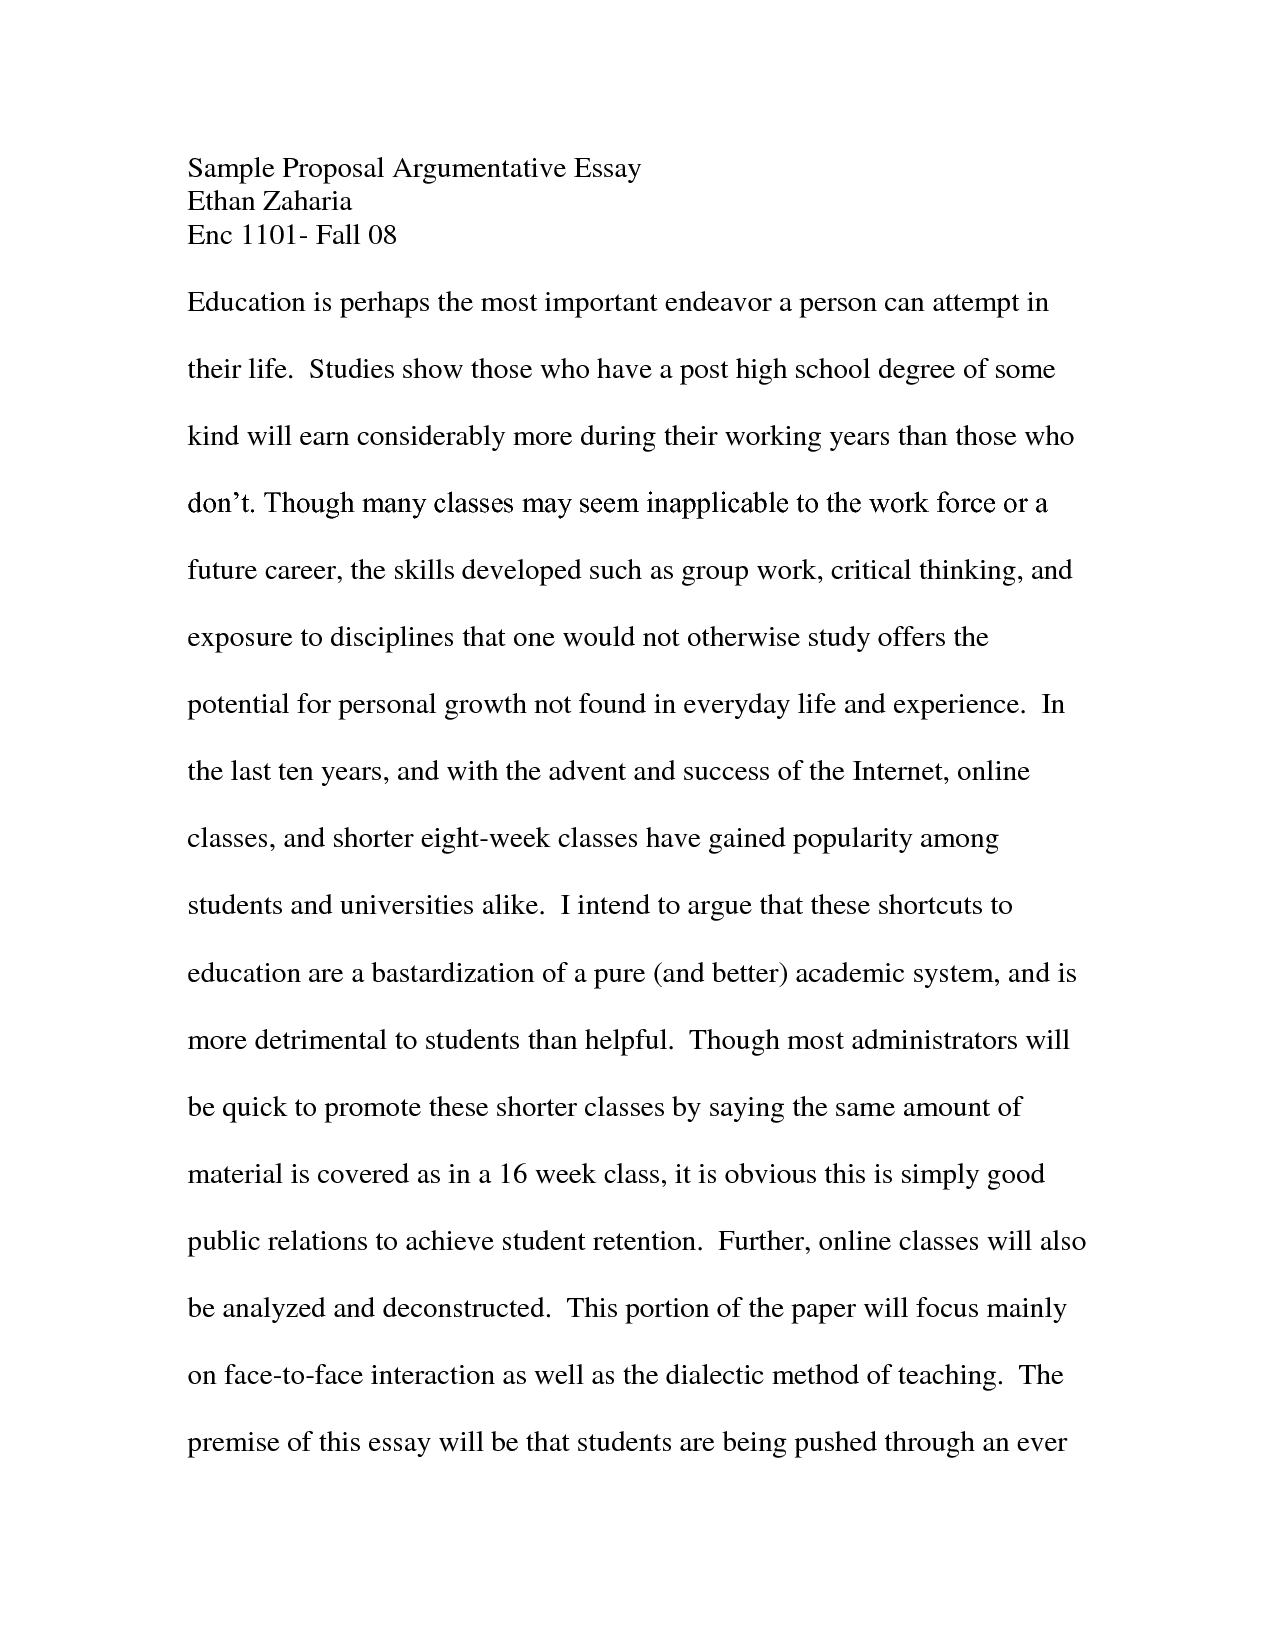 016 Essay Example 3d7hsocgst How To Write Claim For Astounding A An And Support Of Value Policy